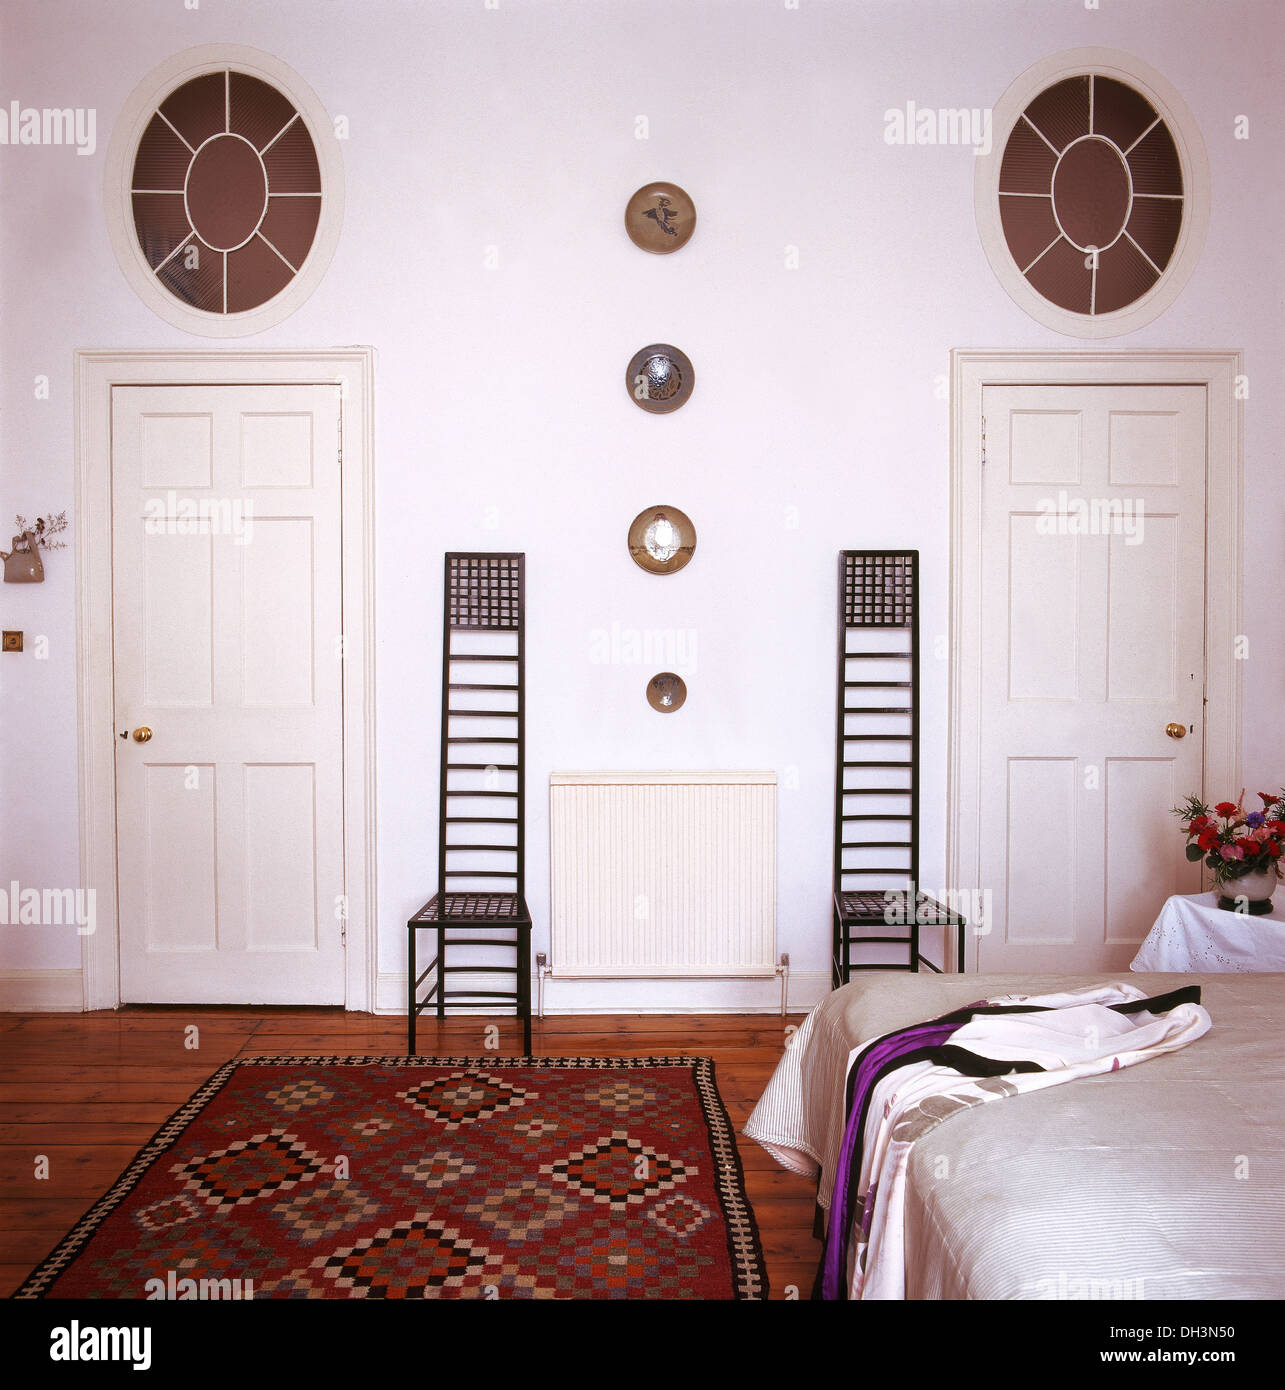 Charles Rennie Mackintosh chairs in white bedroom with ...